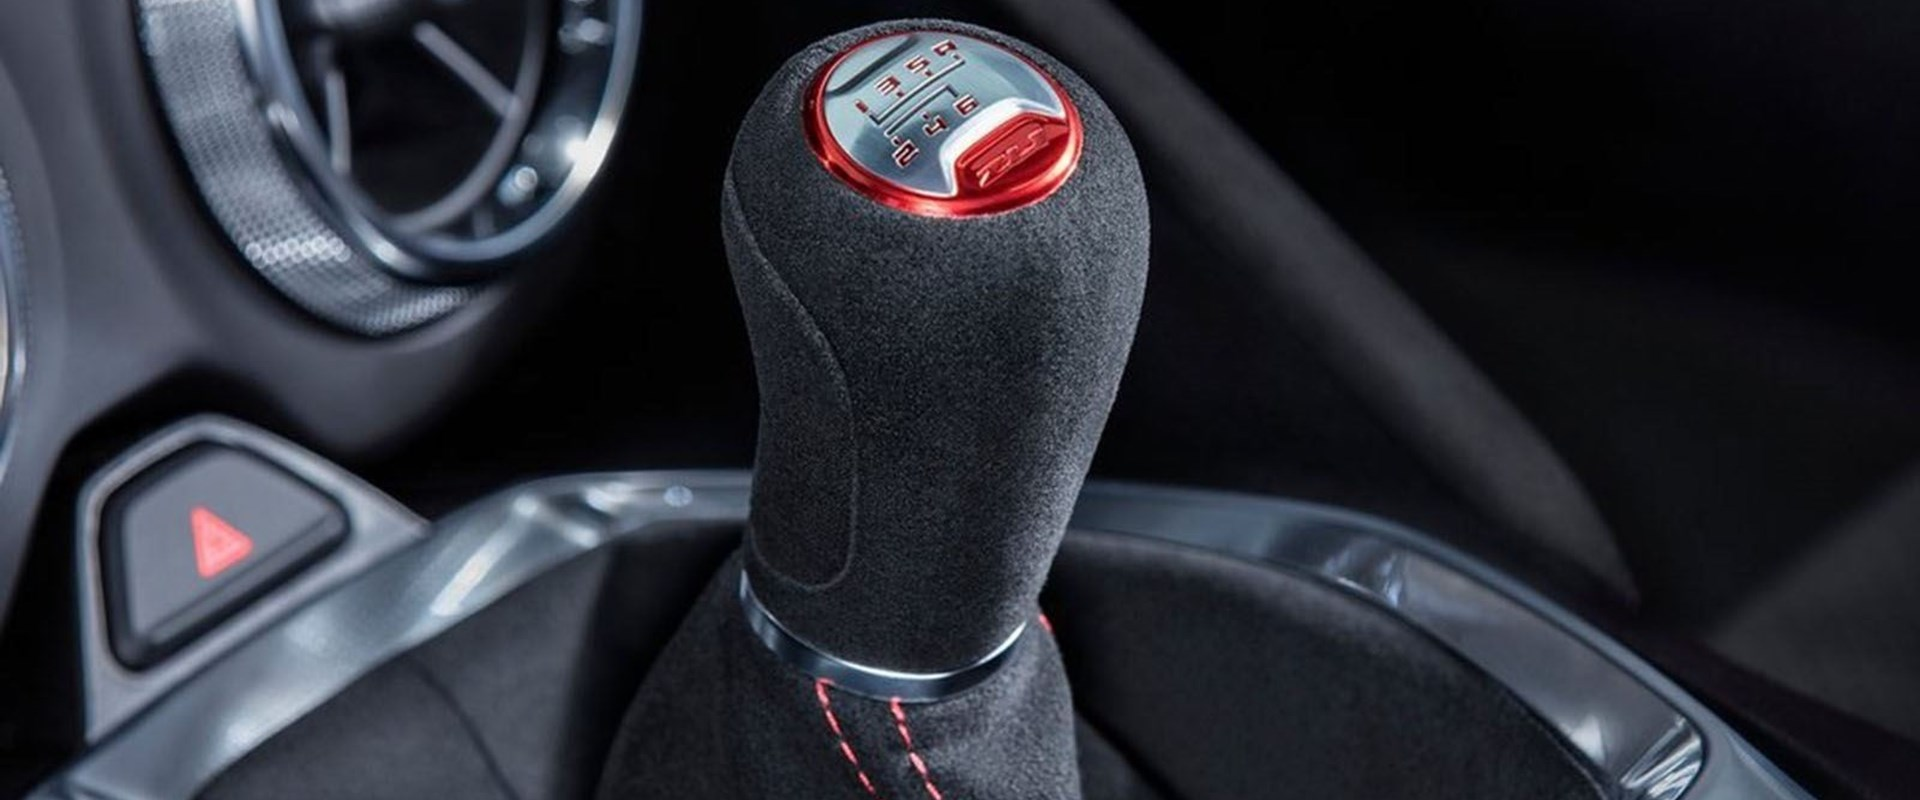 2019 Chevrolet Camaro With Seven-Speed Manual? Not This Year - CarBuzz